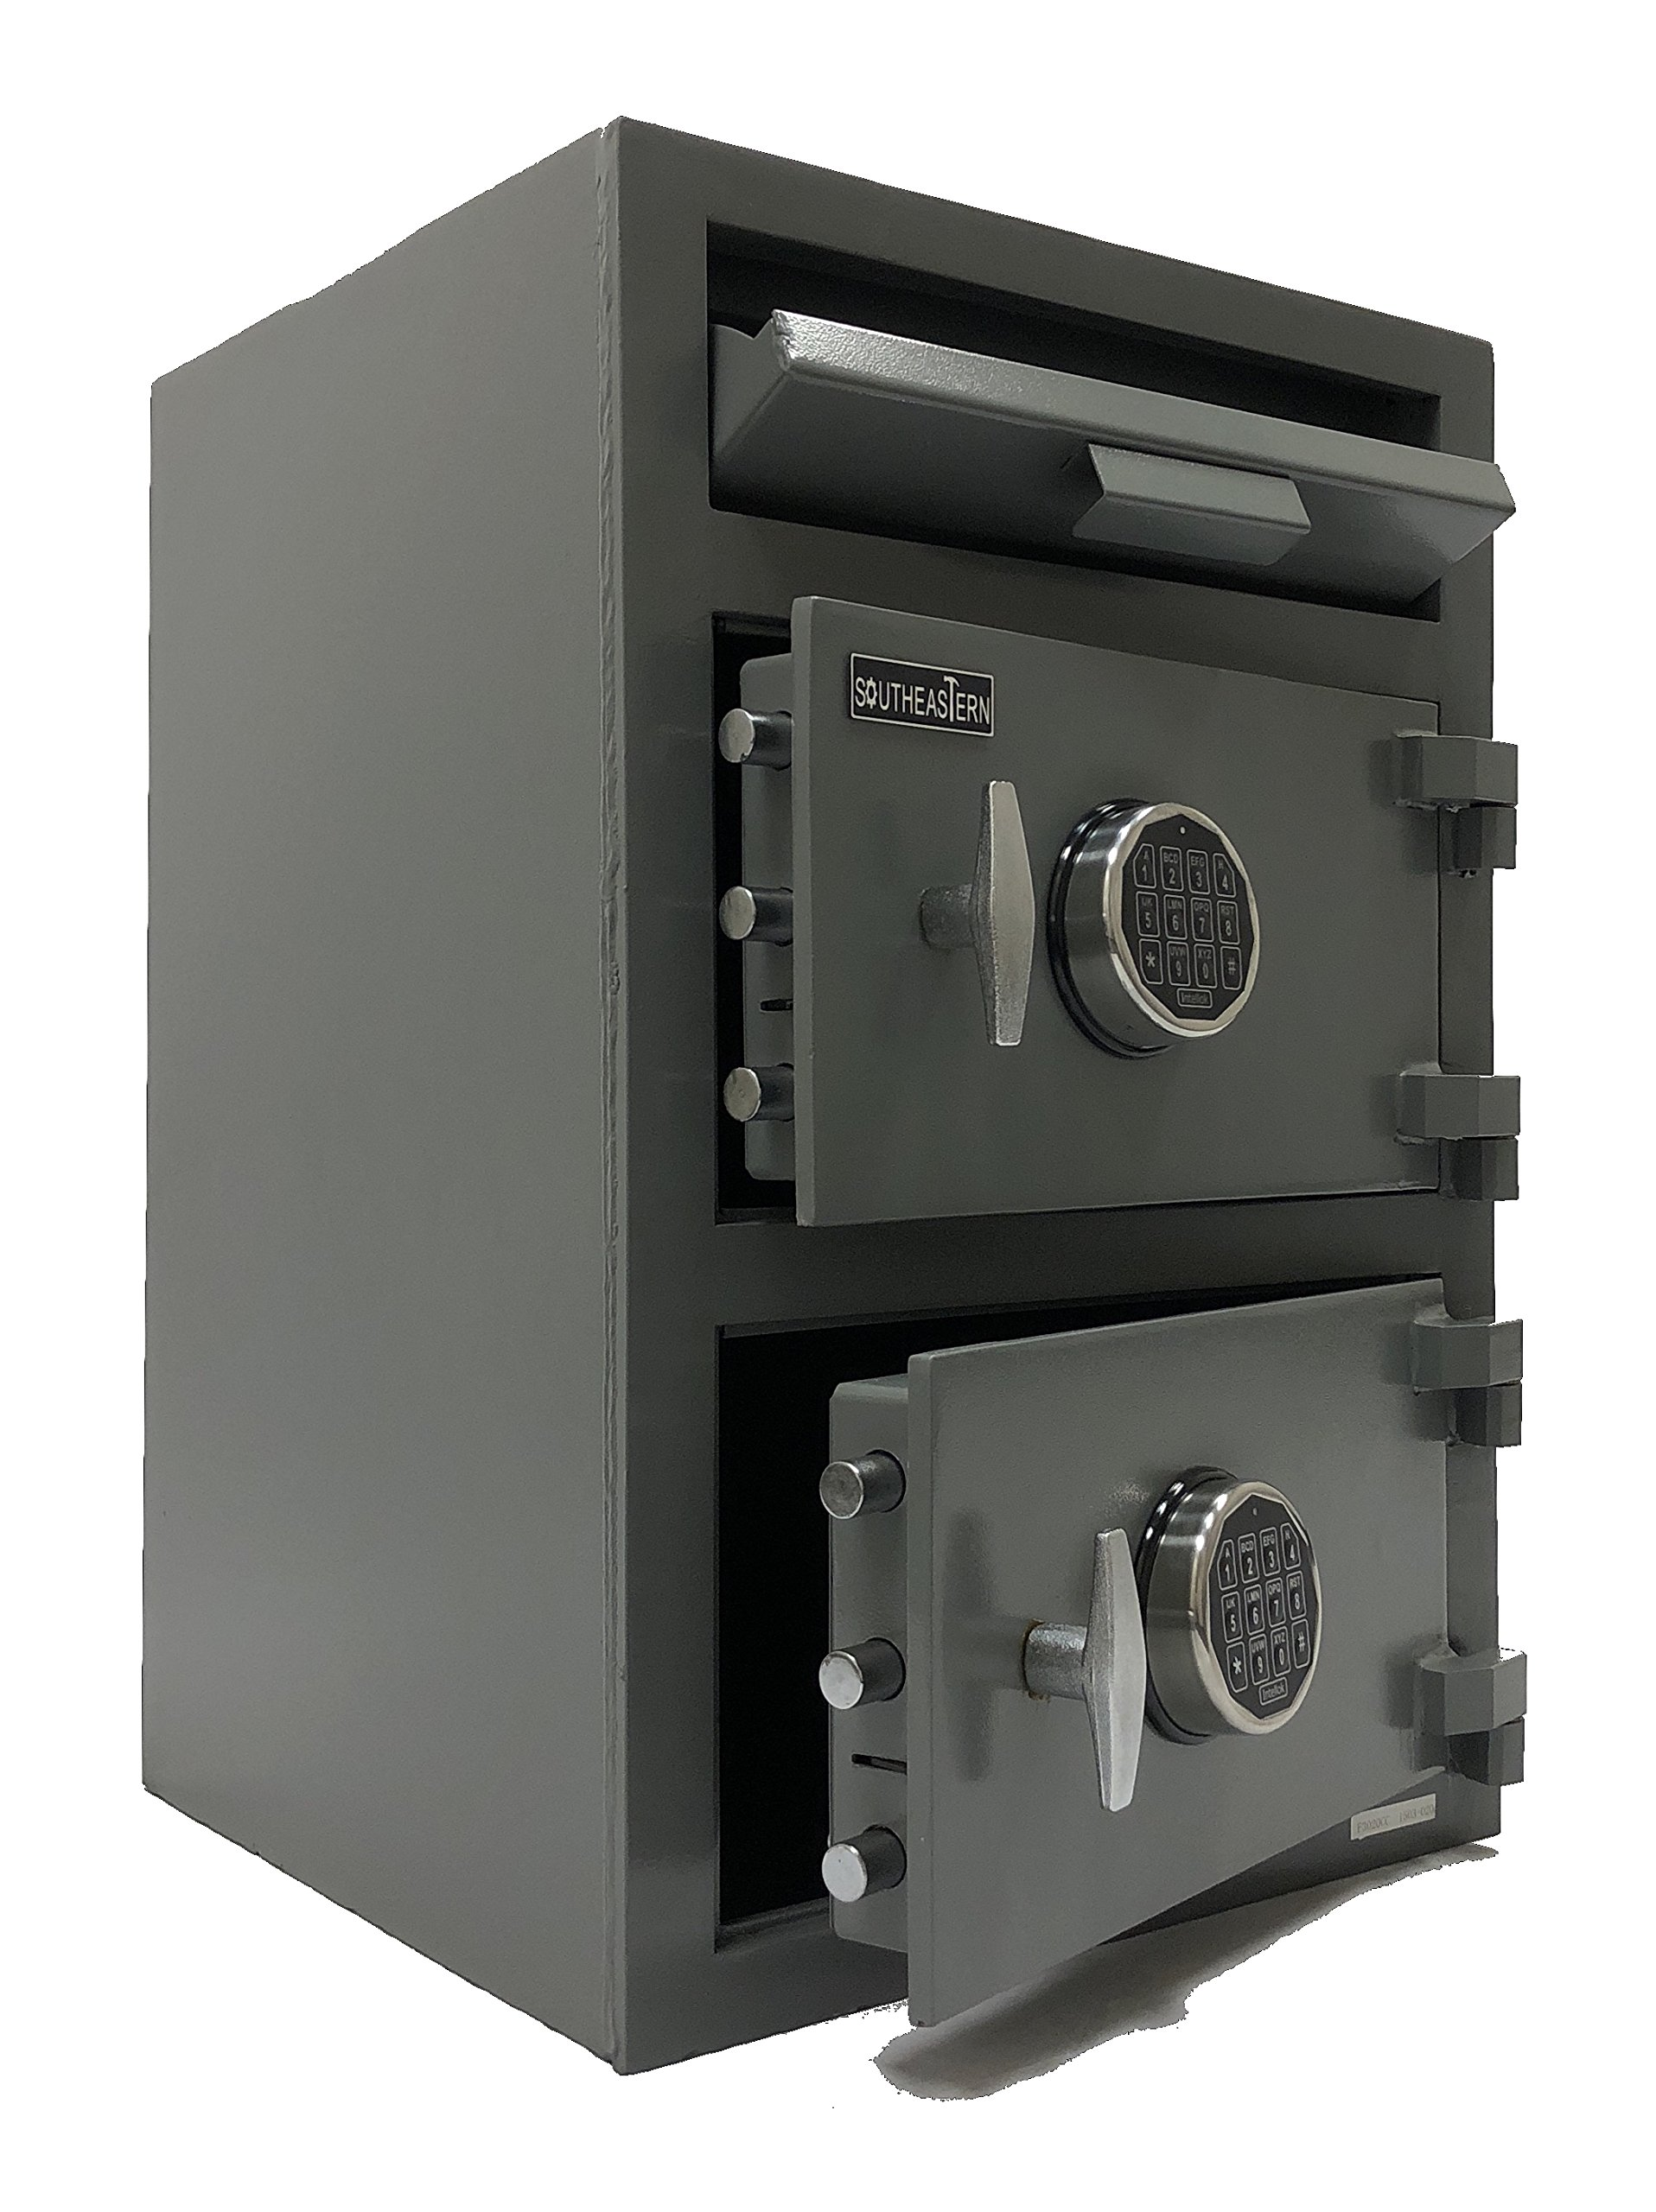 SOUTHEASTERN F3020EE Double Door Money Bag Drop Depository Safe with UL listed digital lock